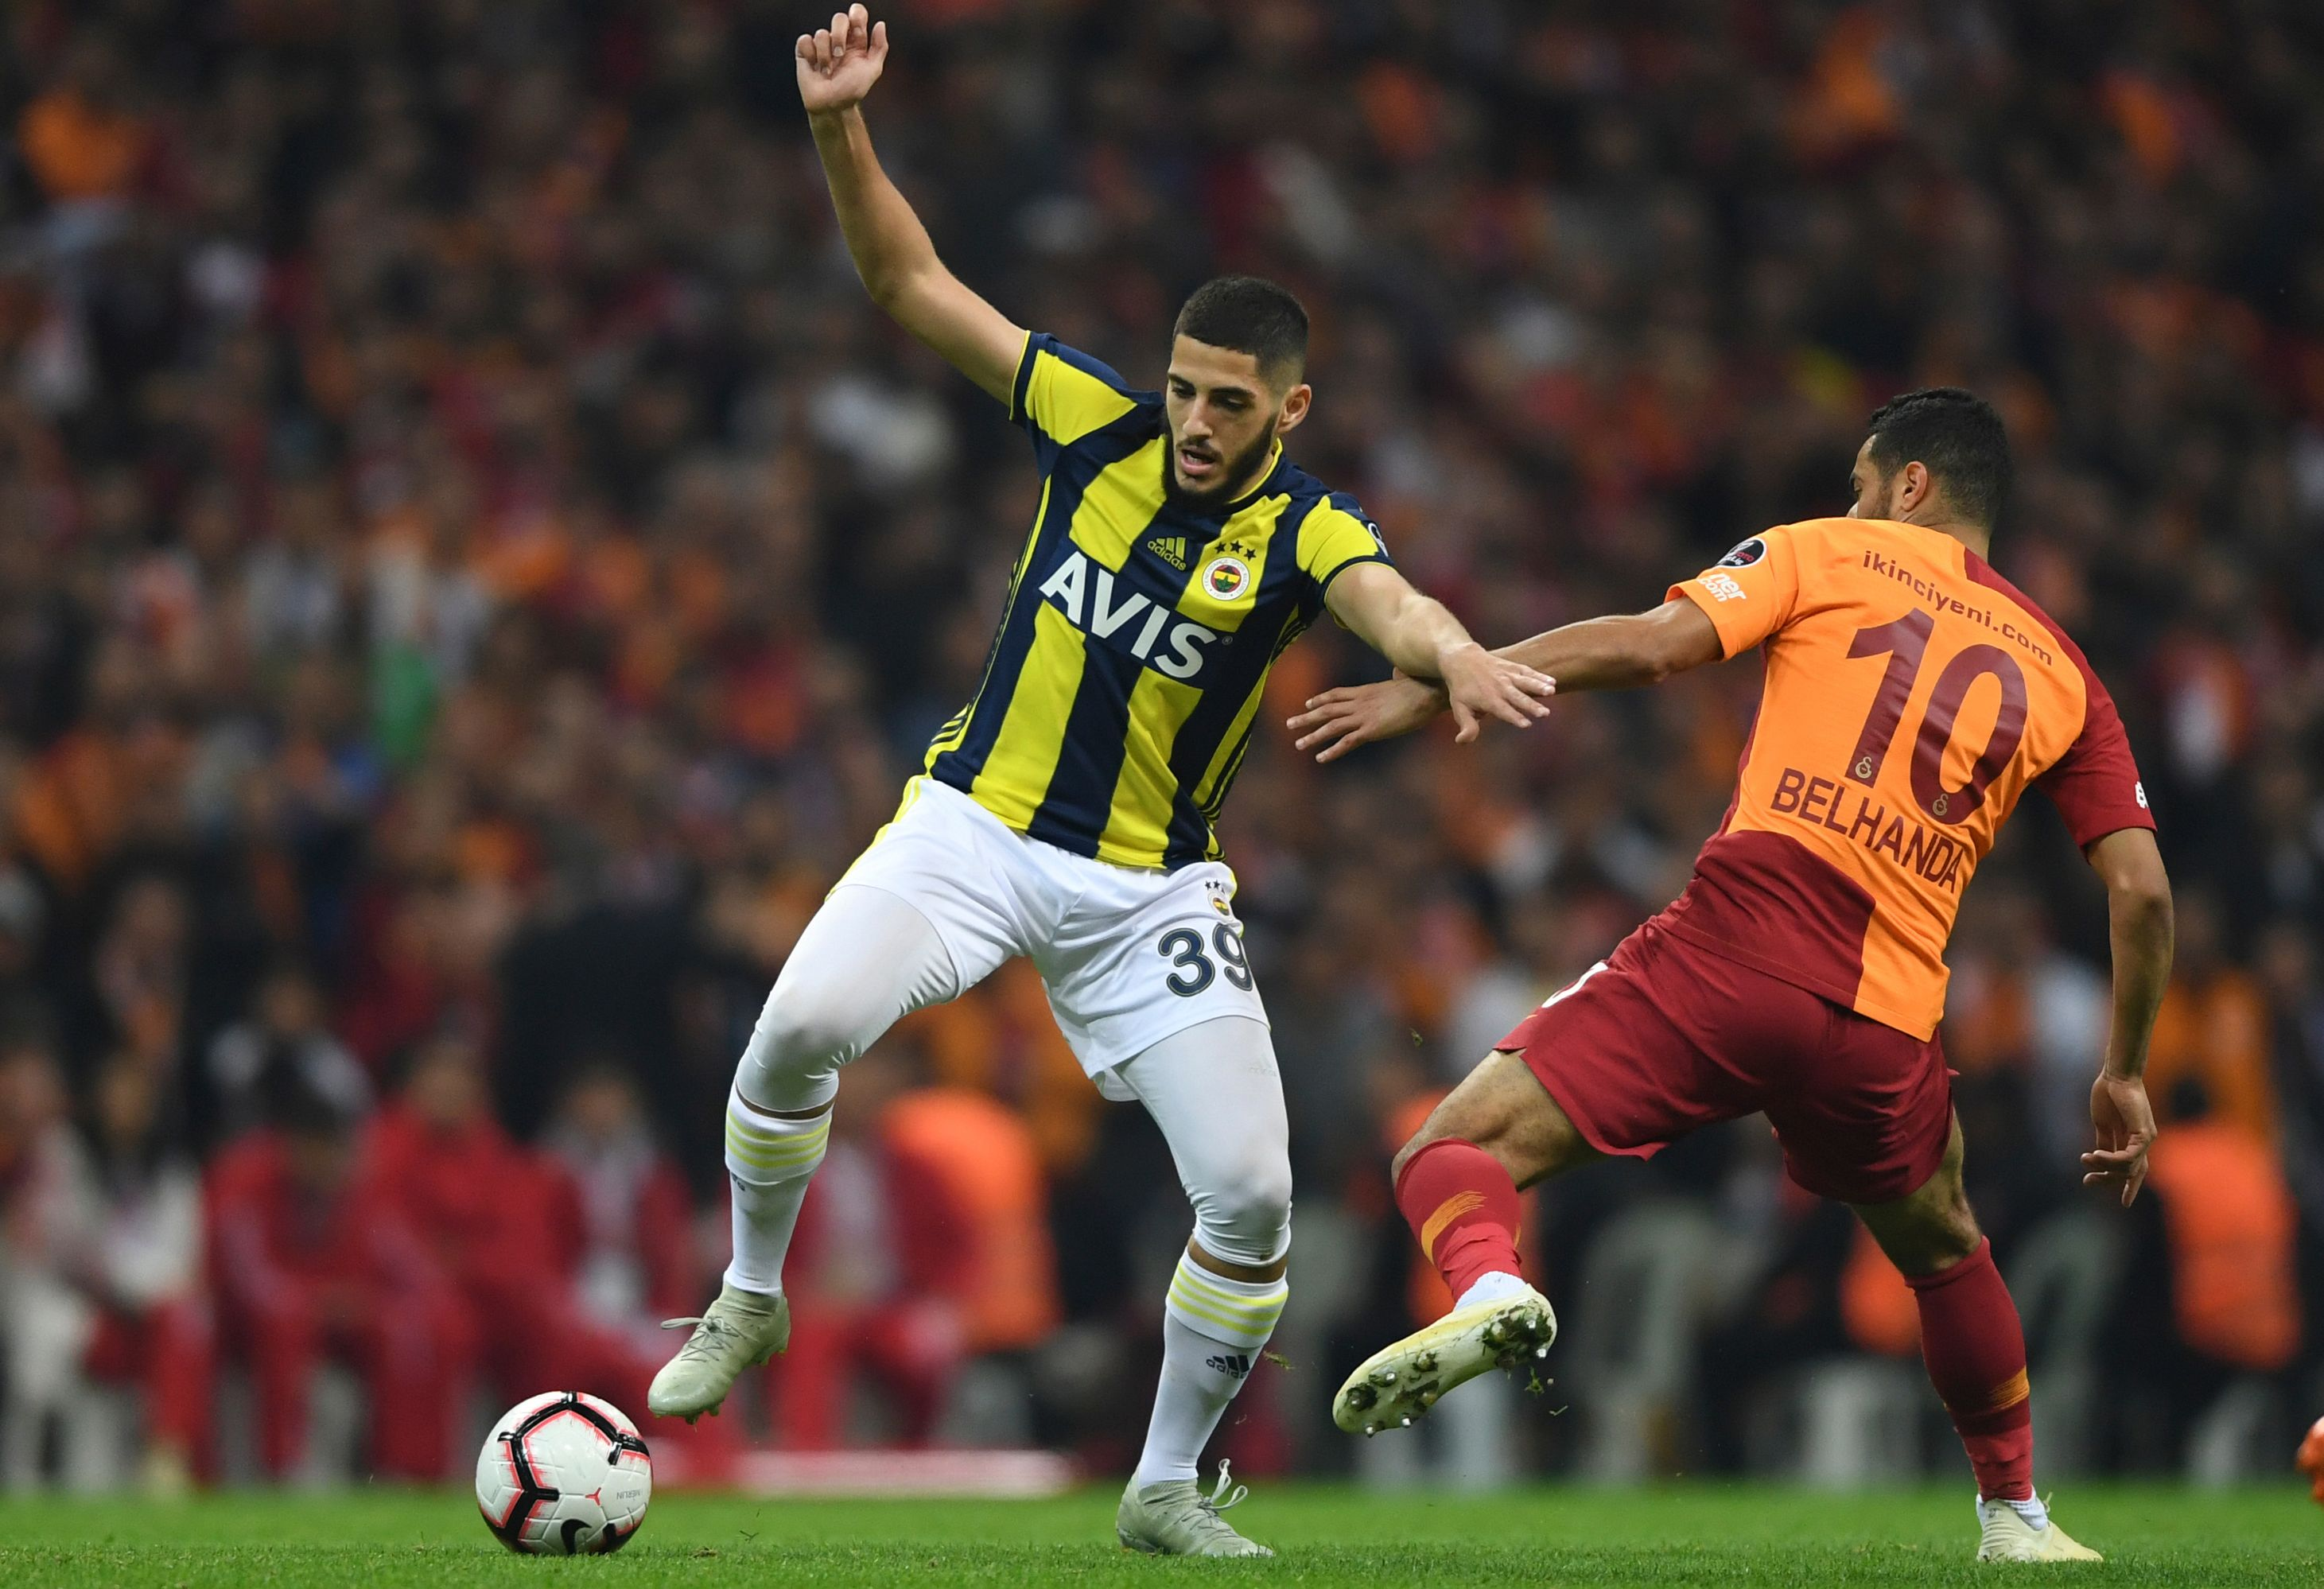 Yassine Benzia Younes Belhanda Galatasaray Fenerbahce Turkish Super League 11/02/18